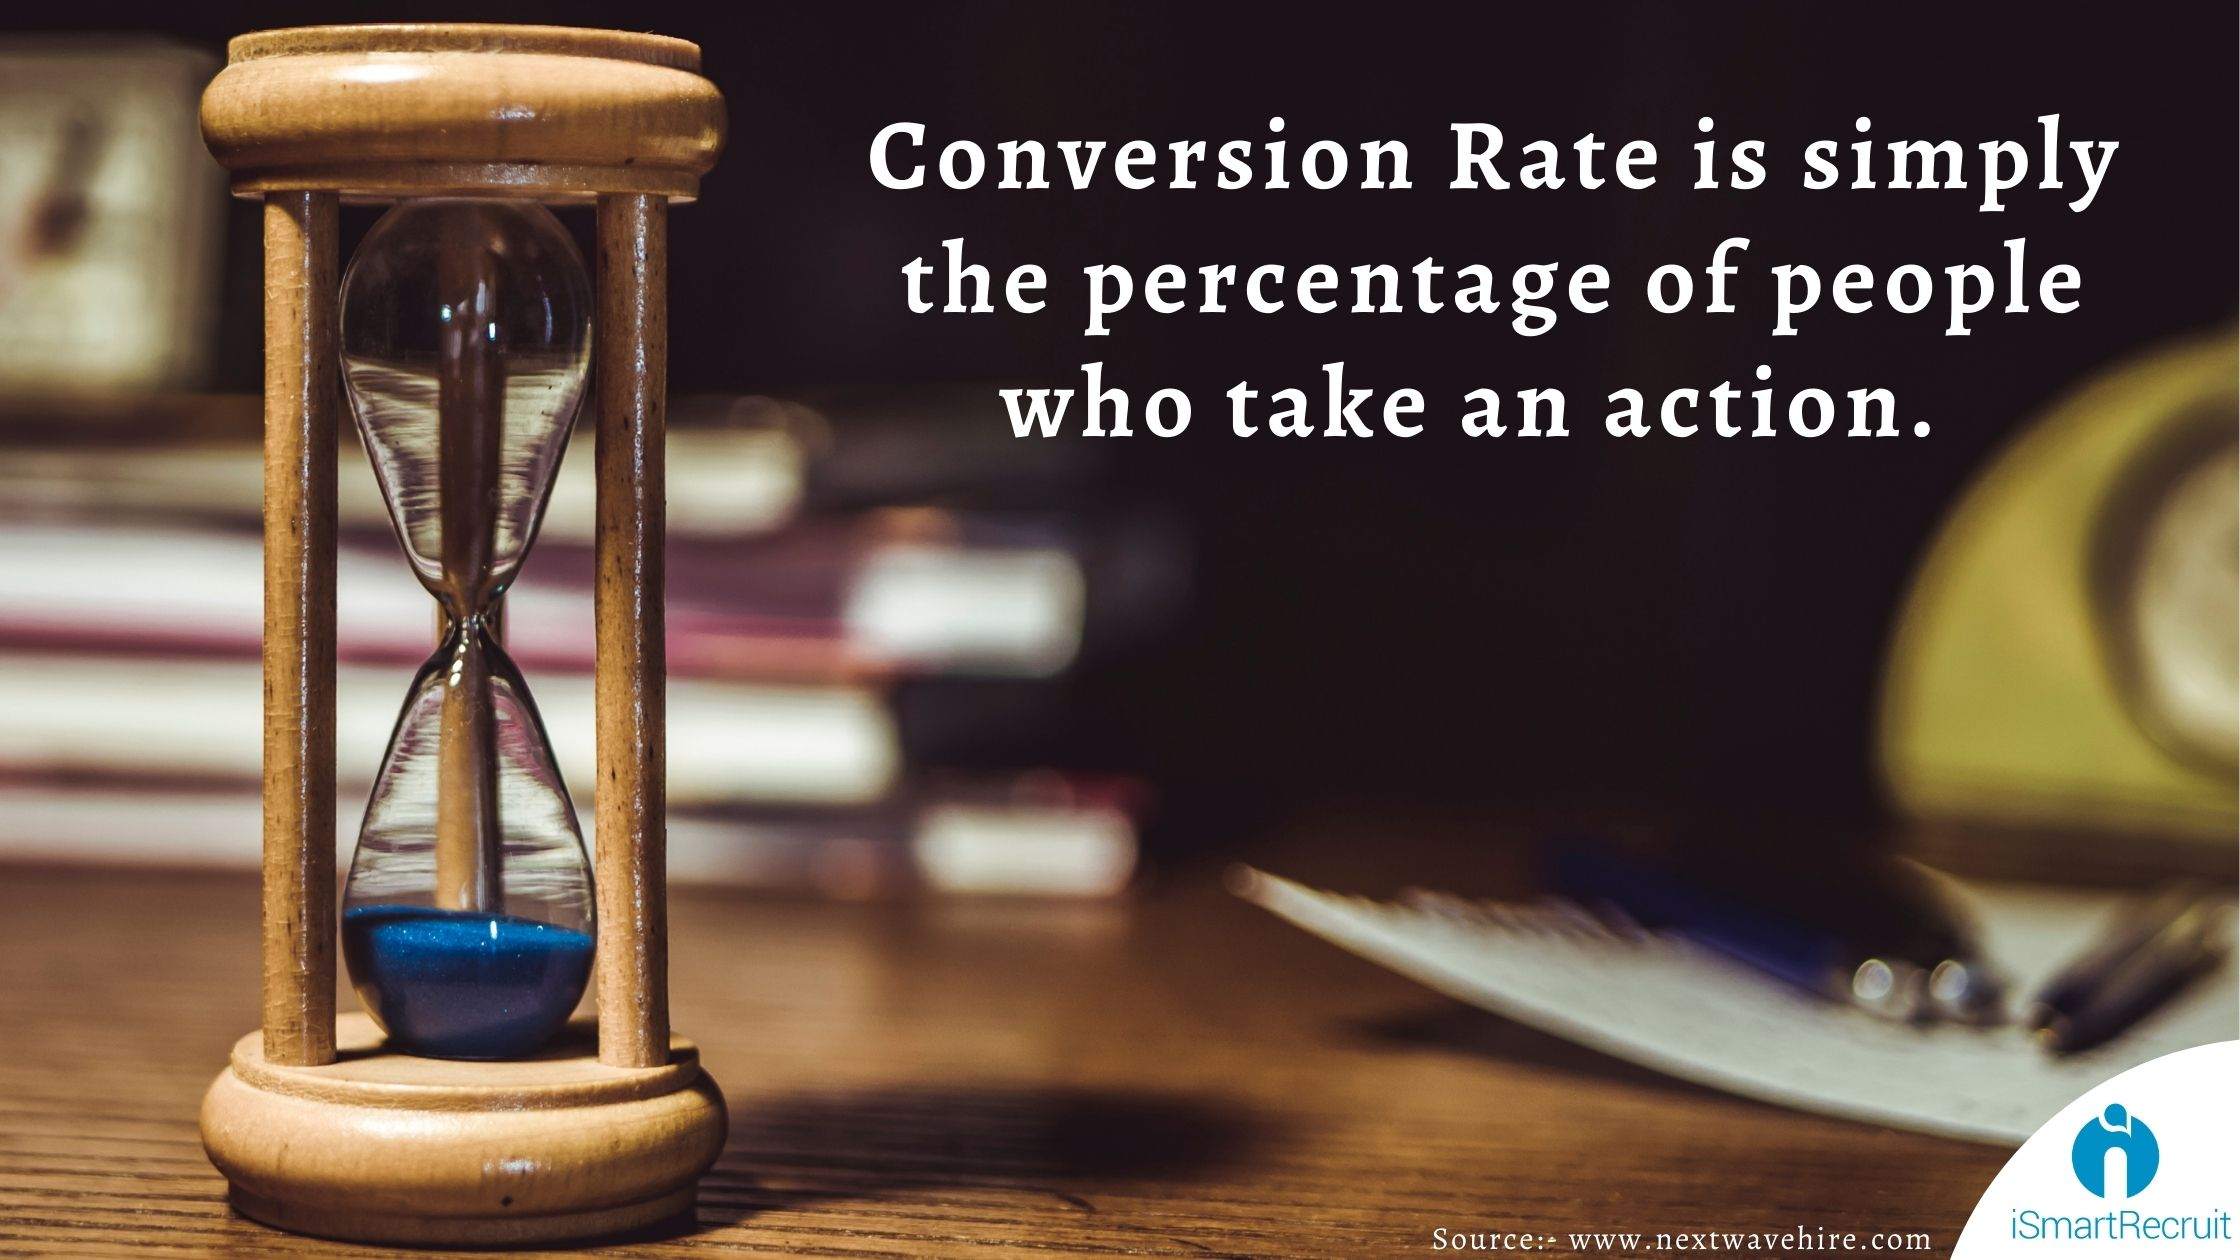 Conversion Rate is simply the percentage of people who take an action